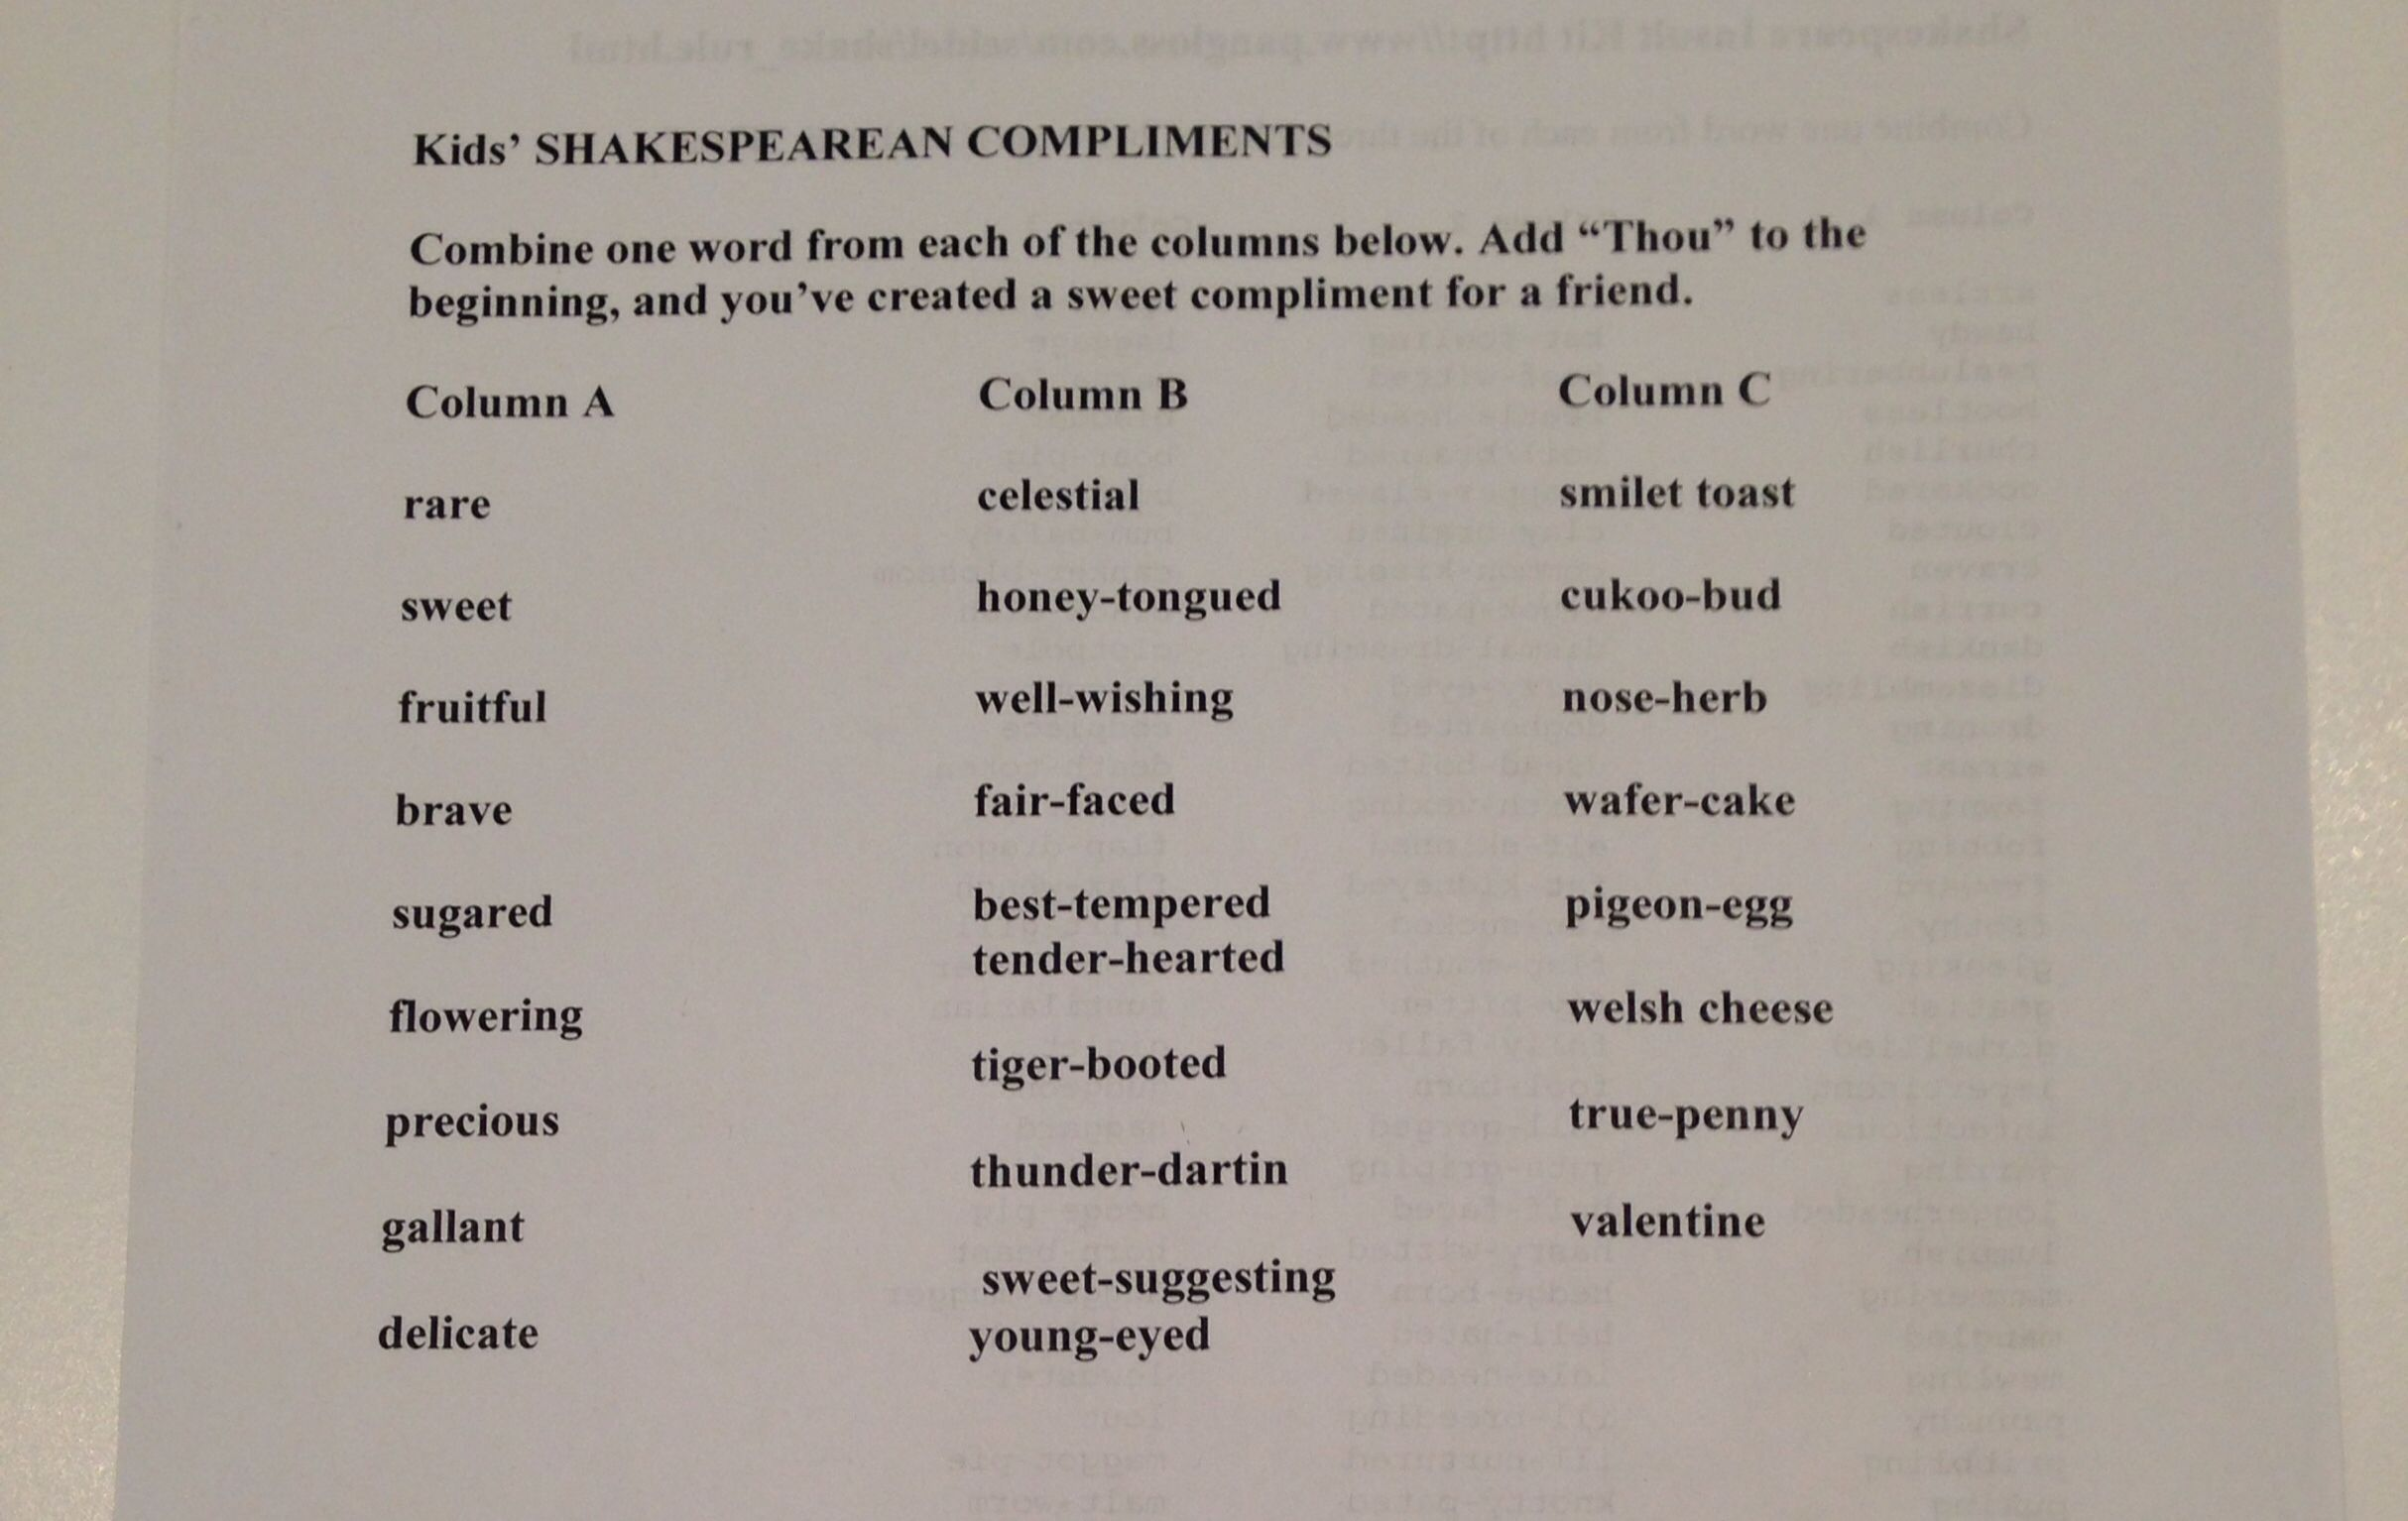 Shakespearean Compliments